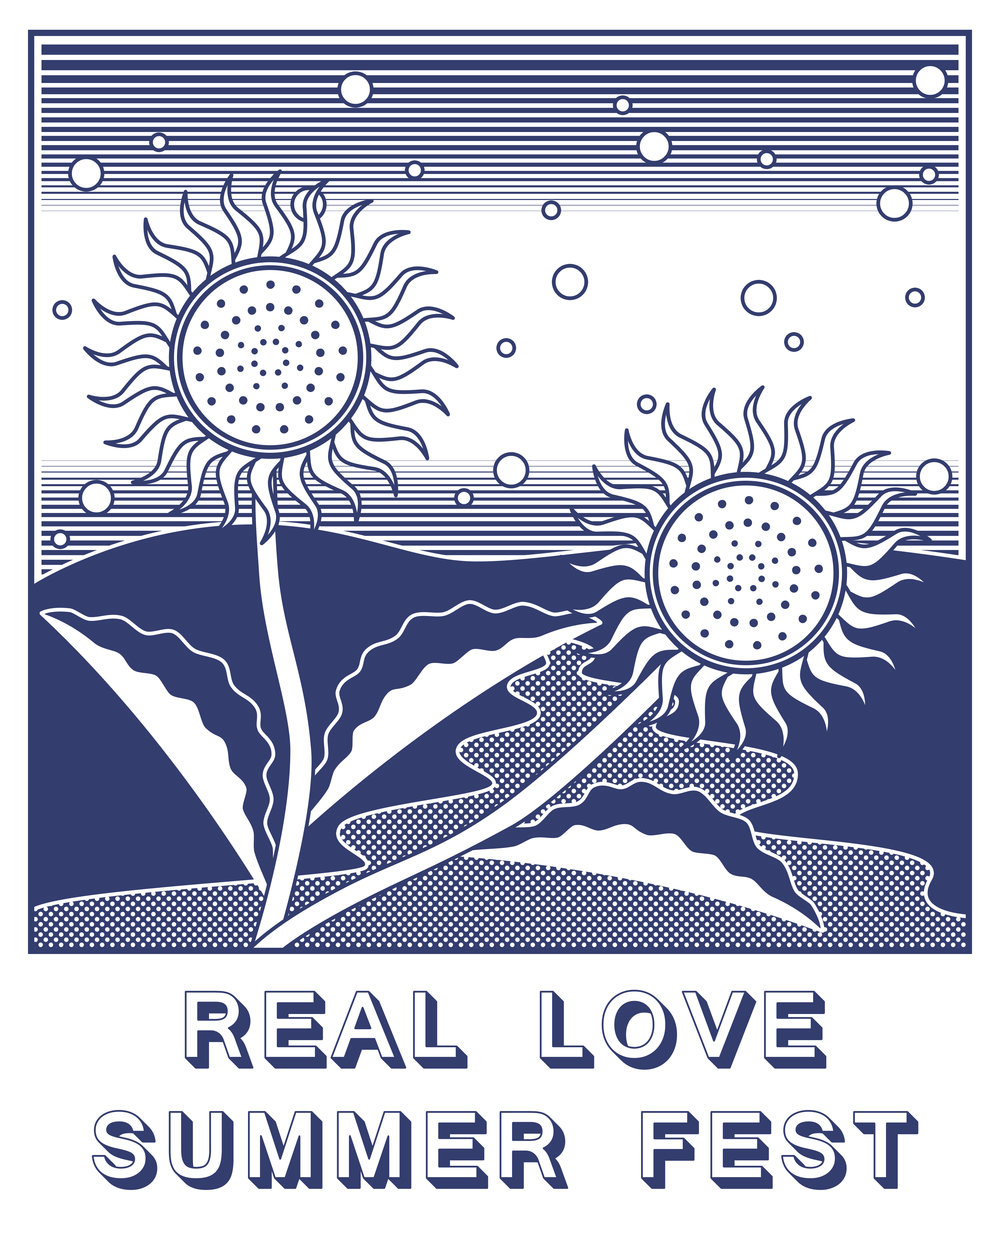 T-shirt design for Real Love Summer Fest